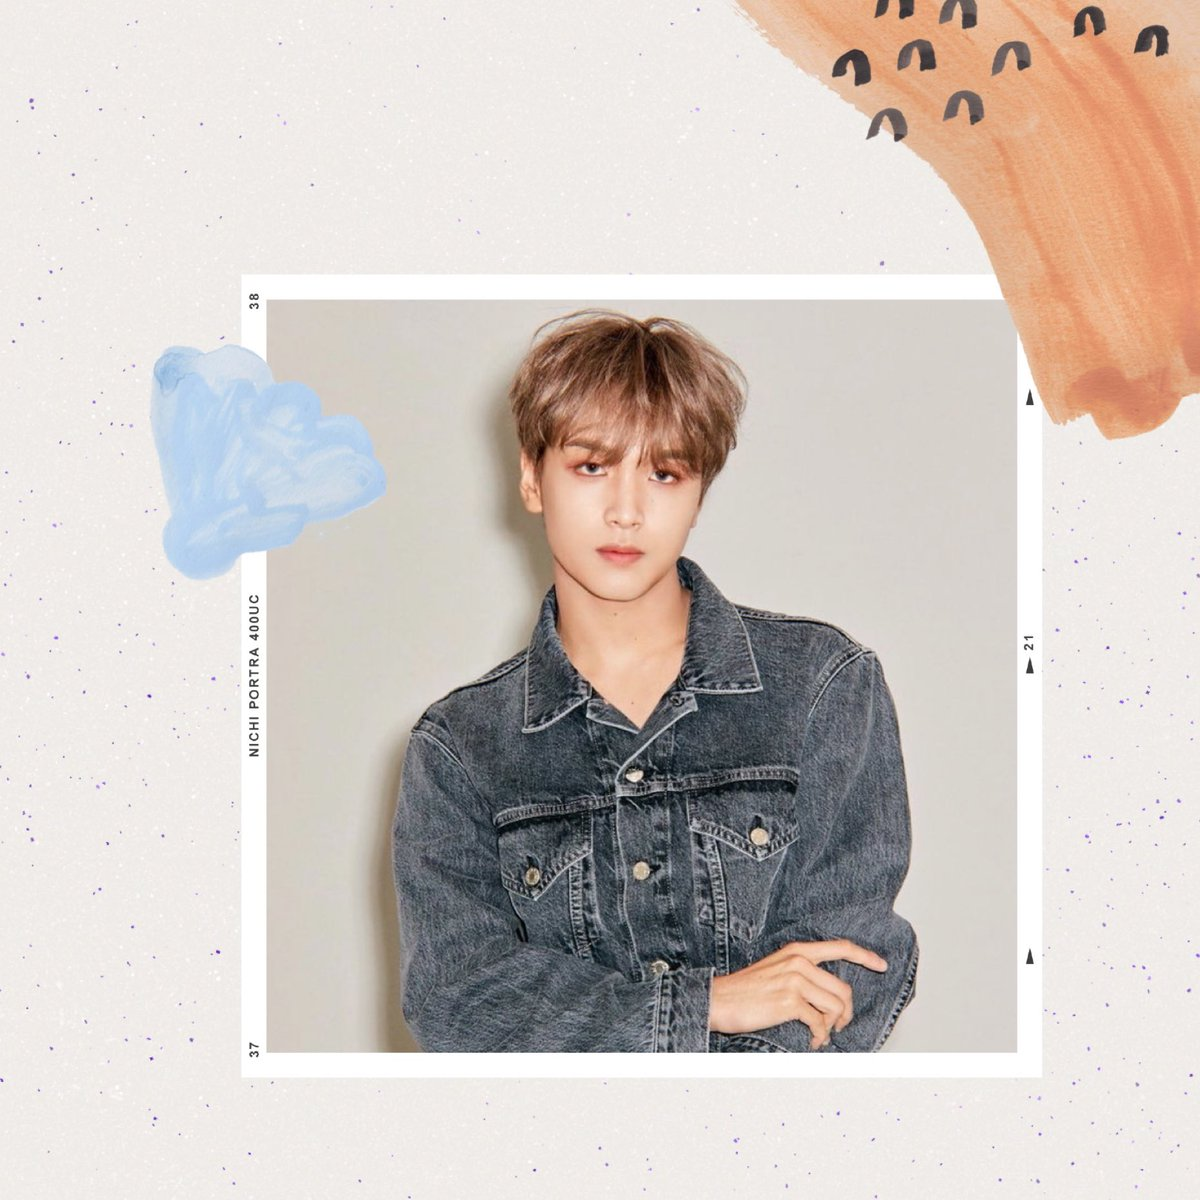 Happy Birthday my Full Sun You deserve all the best that life could bring.I wish you happiness,success and good health. love you ,Haechan#HAPPYHAECHANDAY #해찬 #NCT #NCT127 #NCTDREAMpic.twitter.com/bFNcfKXSJu